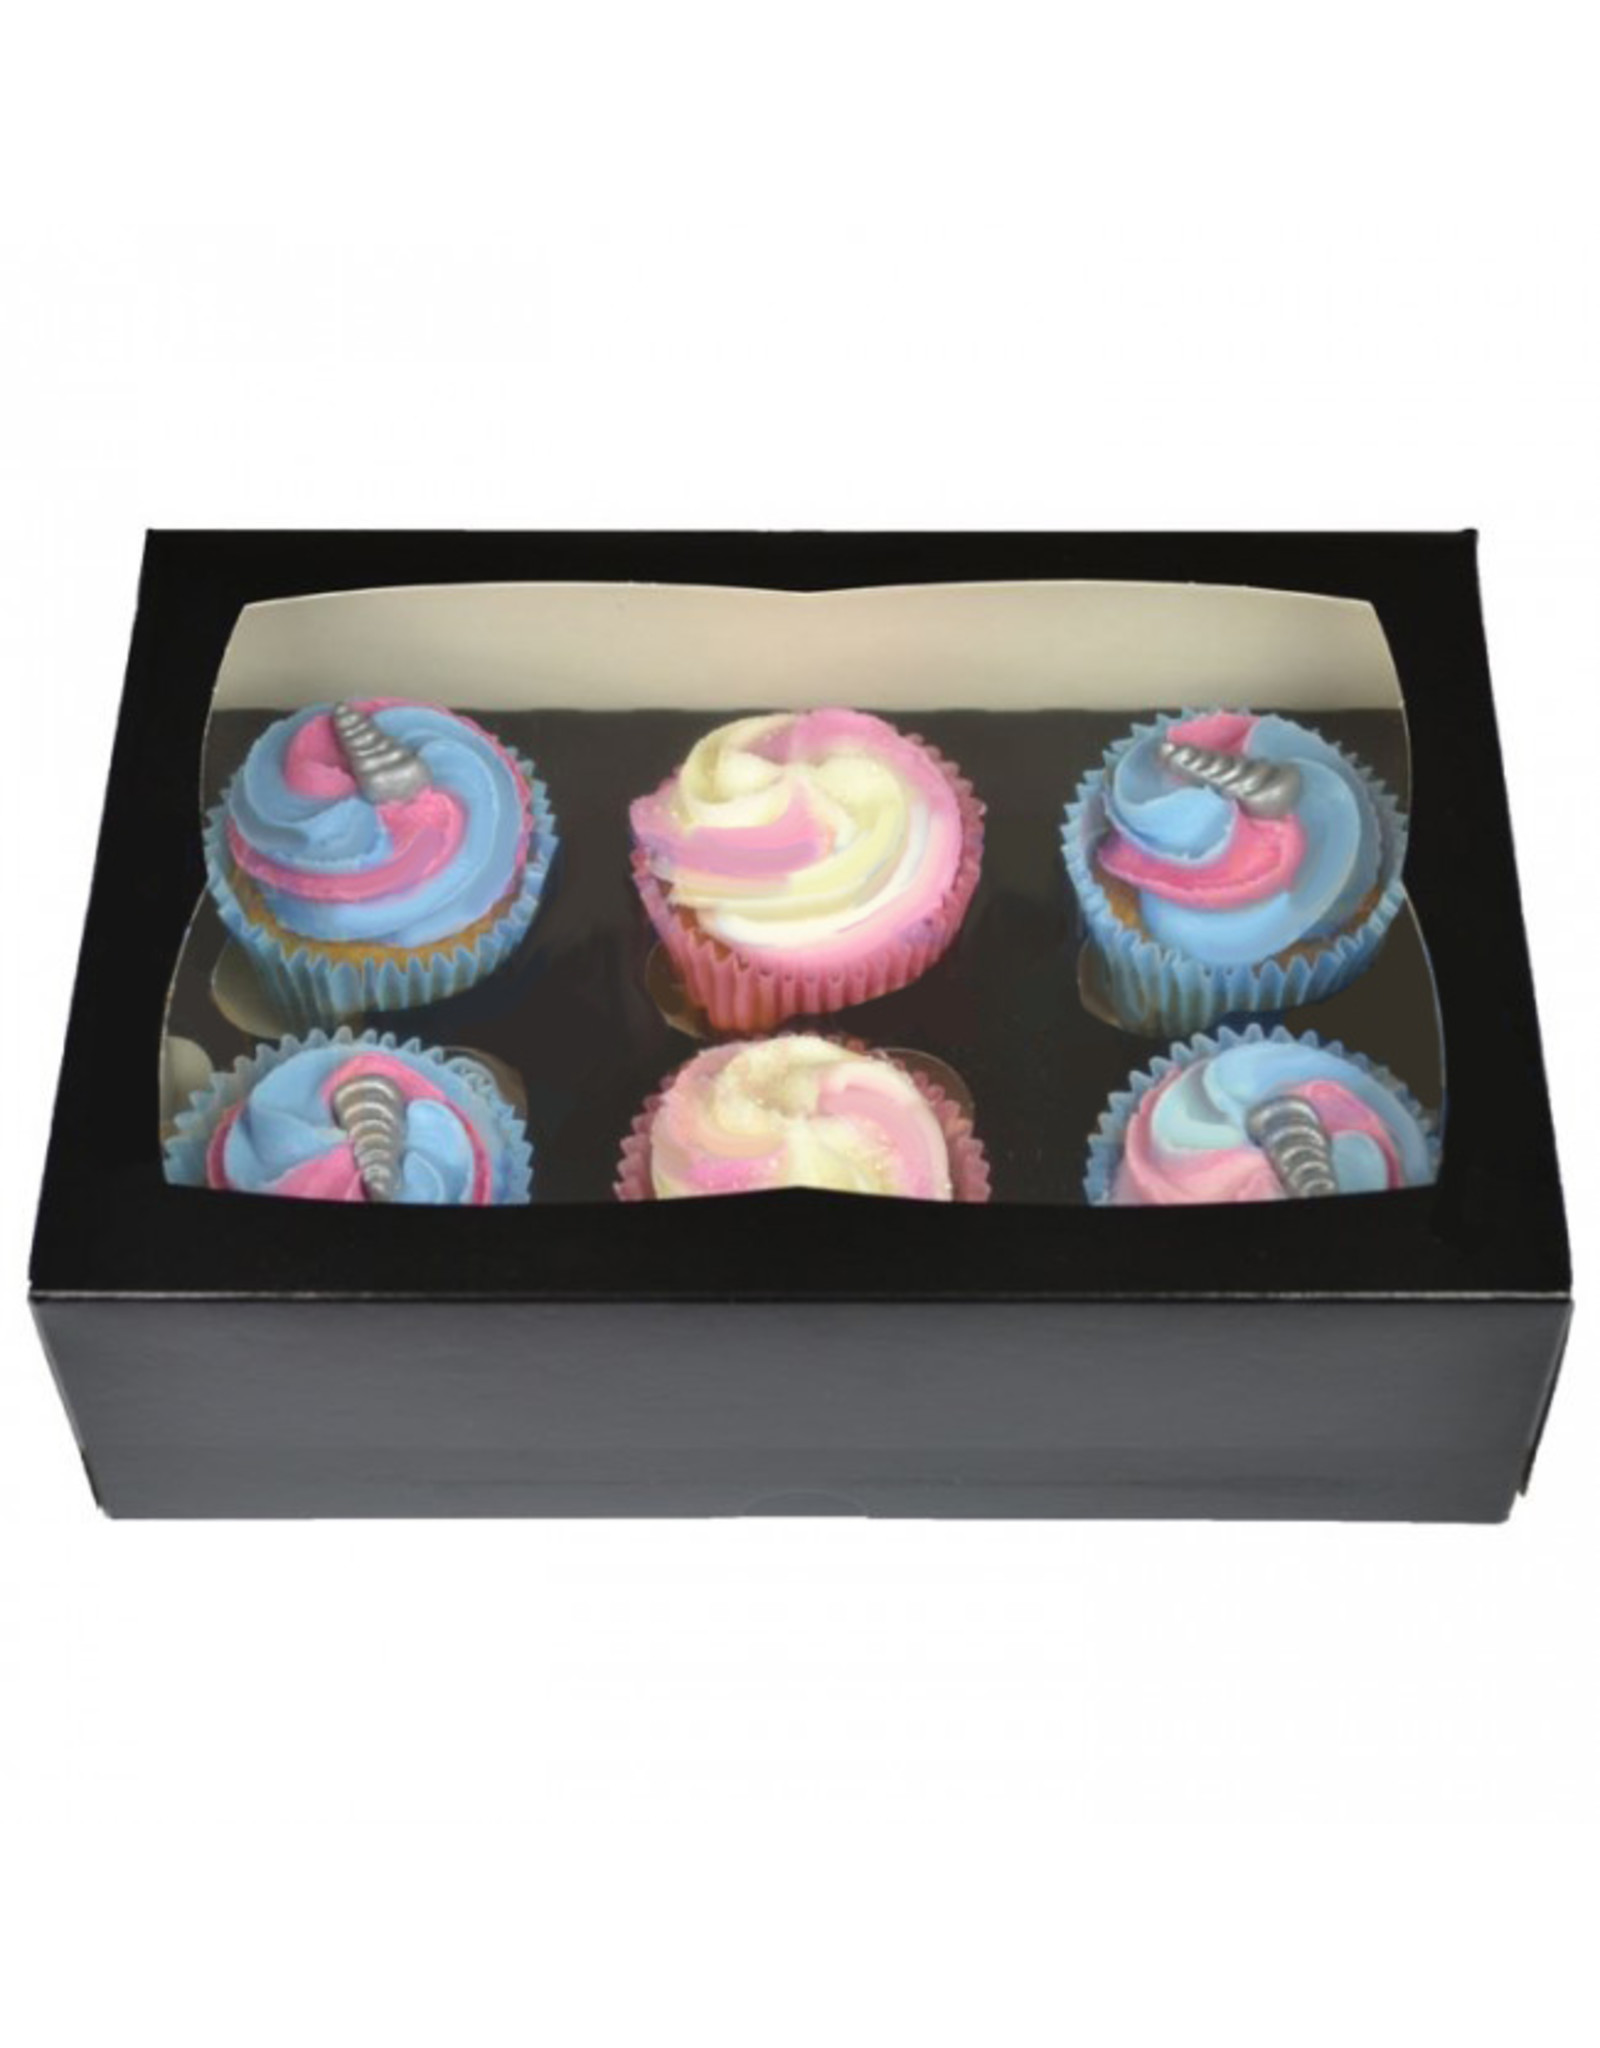 Black box for 6 cupcakes (25 pieces)